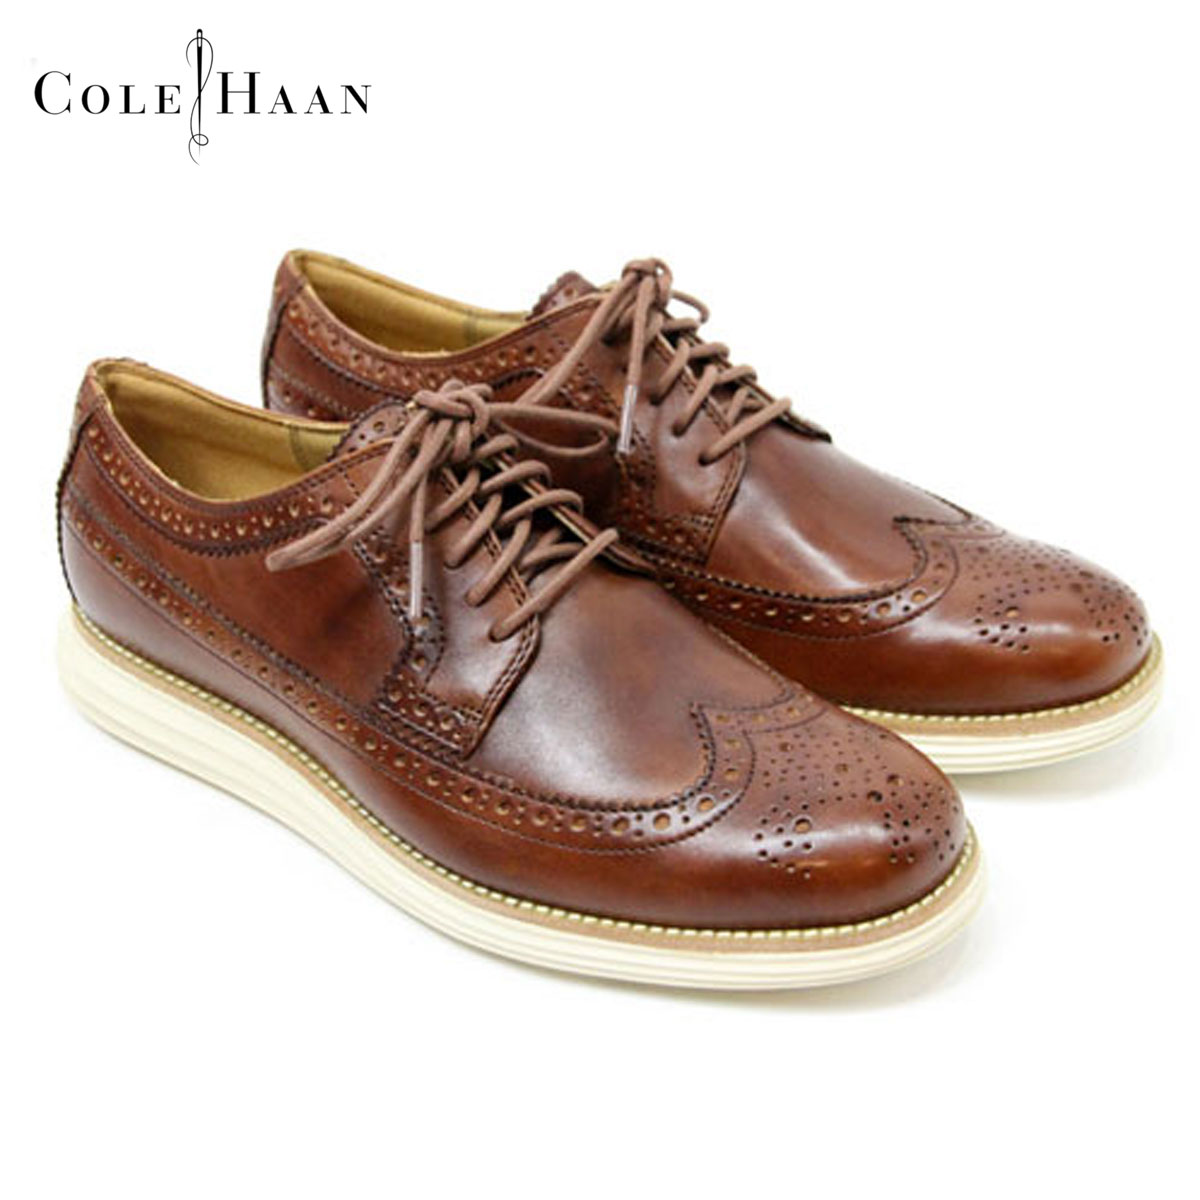 dc9d0b8f4a9226 Cole Haan COLE HAAN genuine dress shoes LUNARGRAND WING. 10P30Nov14 TIP  C13739 (WOODBURY)